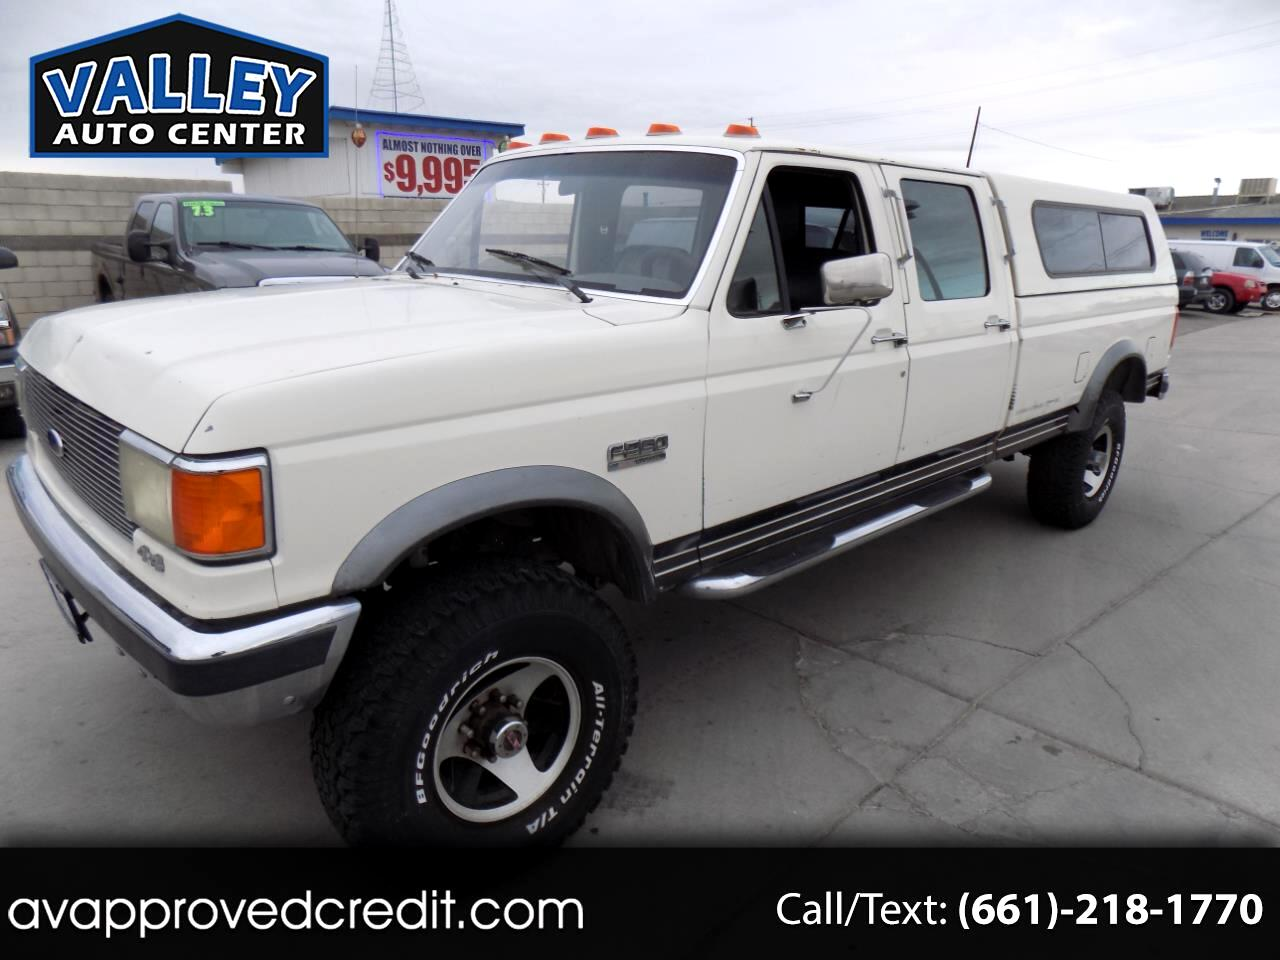 1991 Ford F-350 Crew Cab 4WD